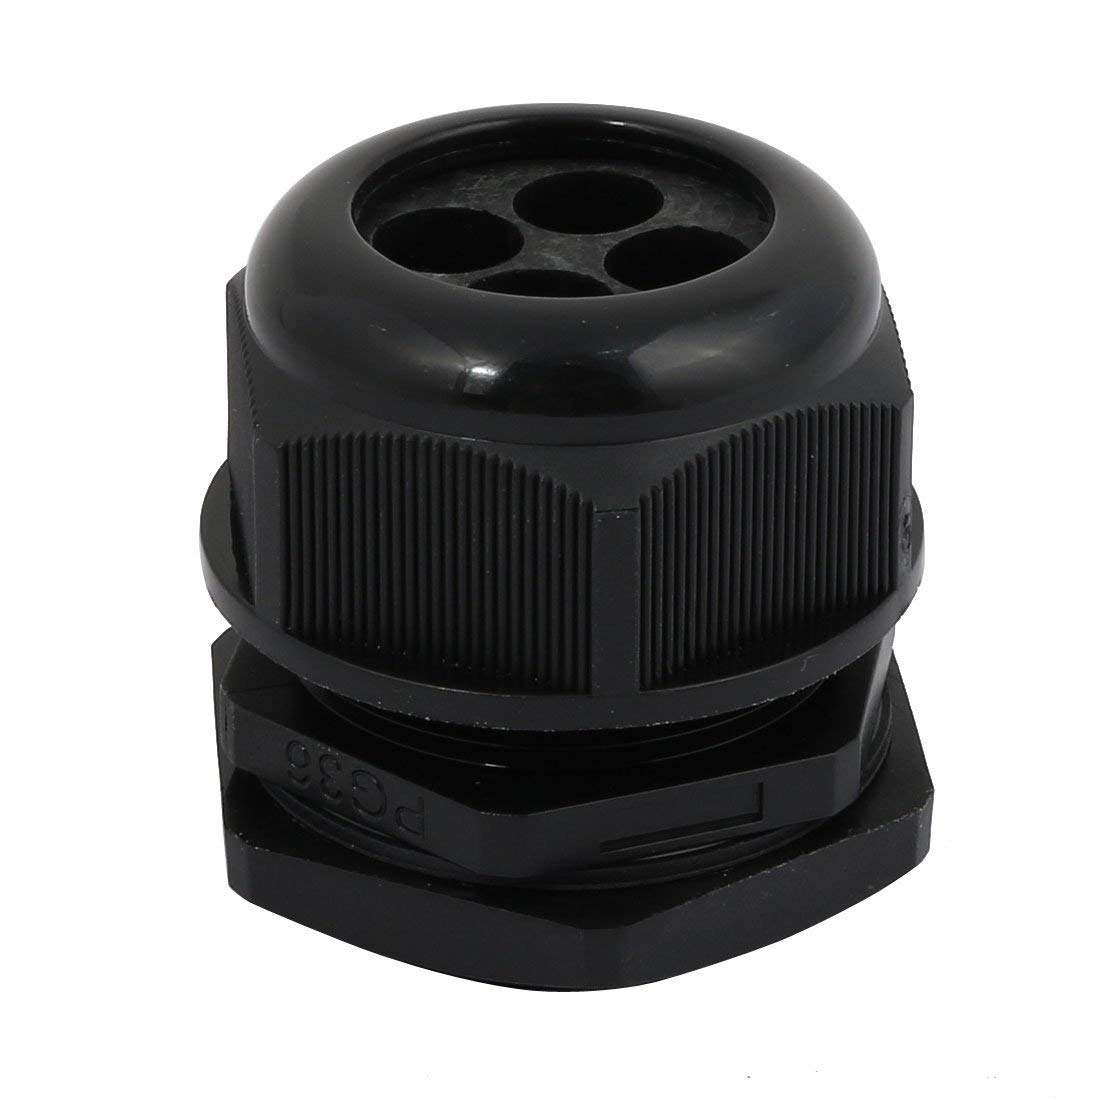 Yongcun Nylon Cable Glands Waterproof Cable Gland Joints PG21 Wire OD 12.5mm to 18mm Pack of 10pcs